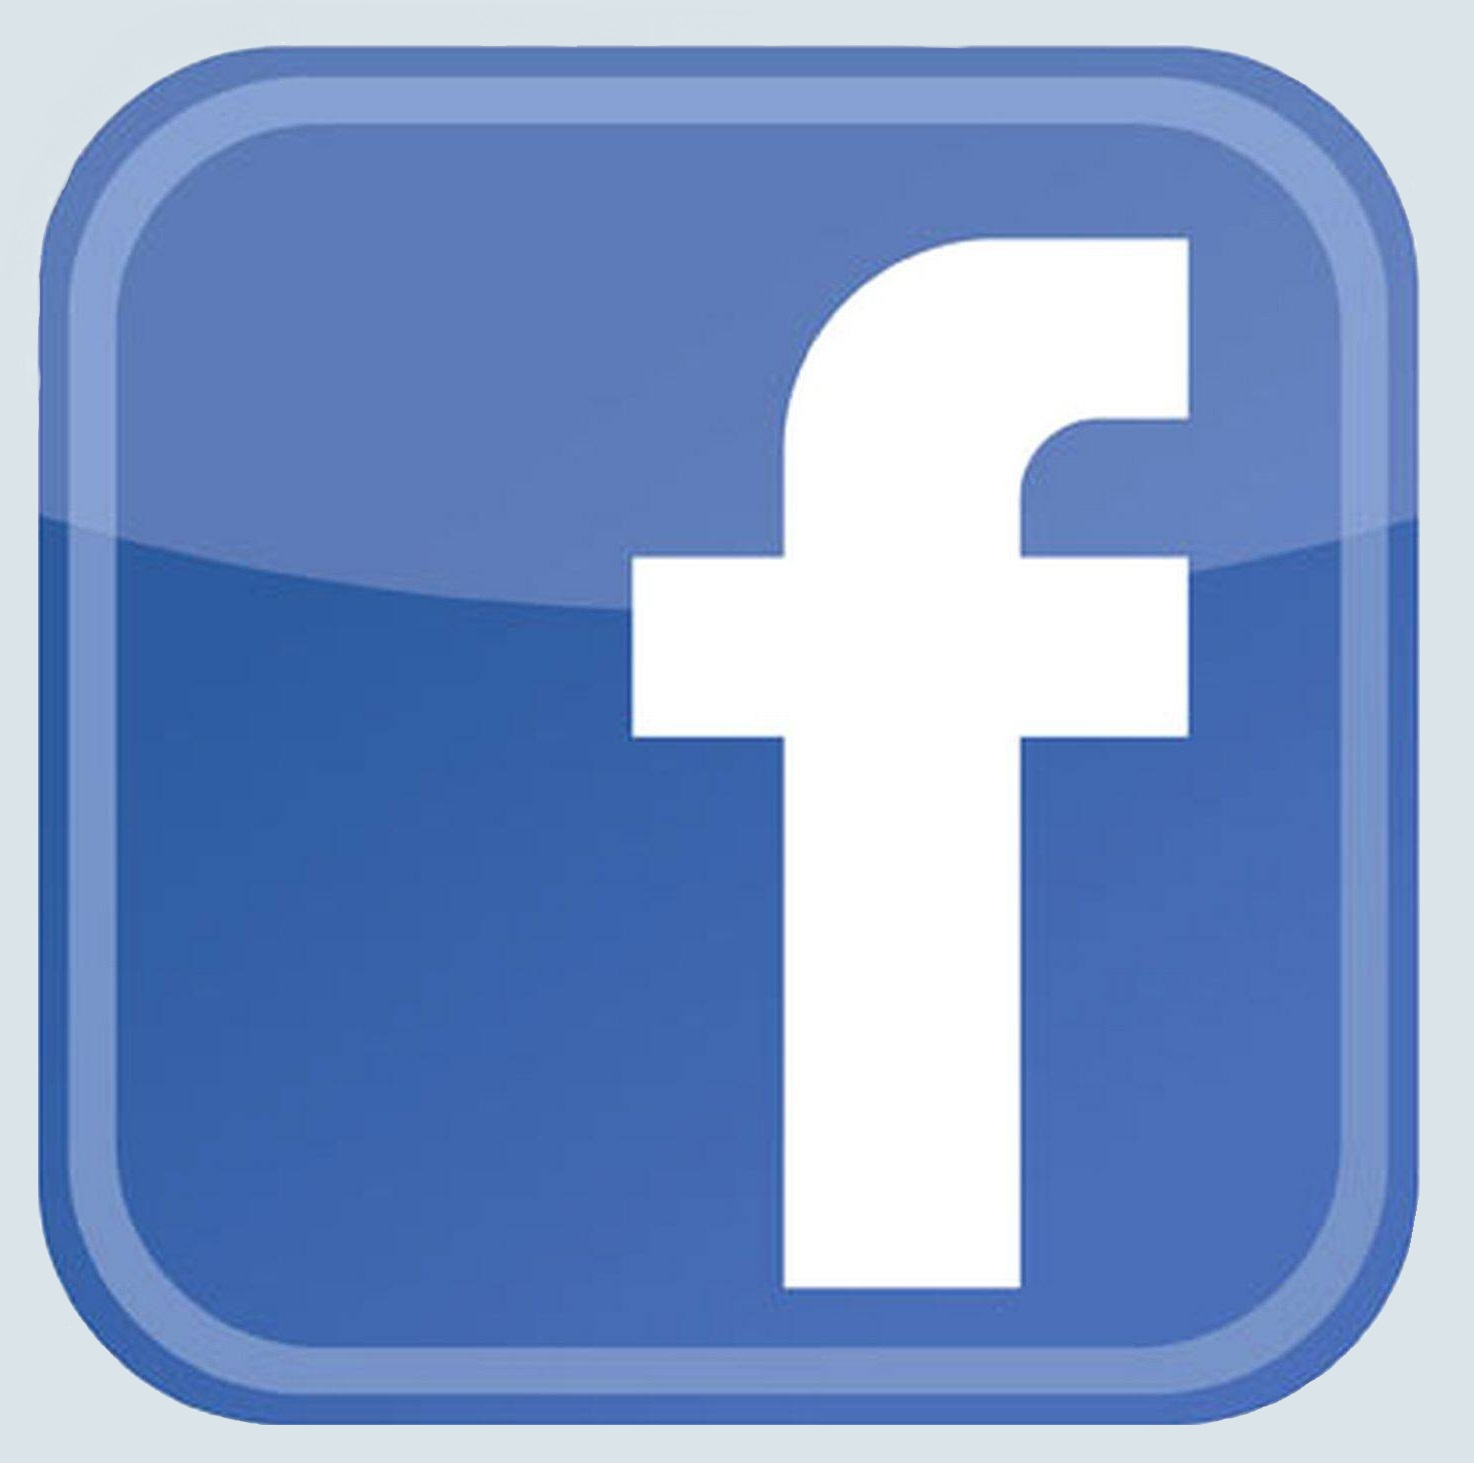 facebook-fb-icon-25